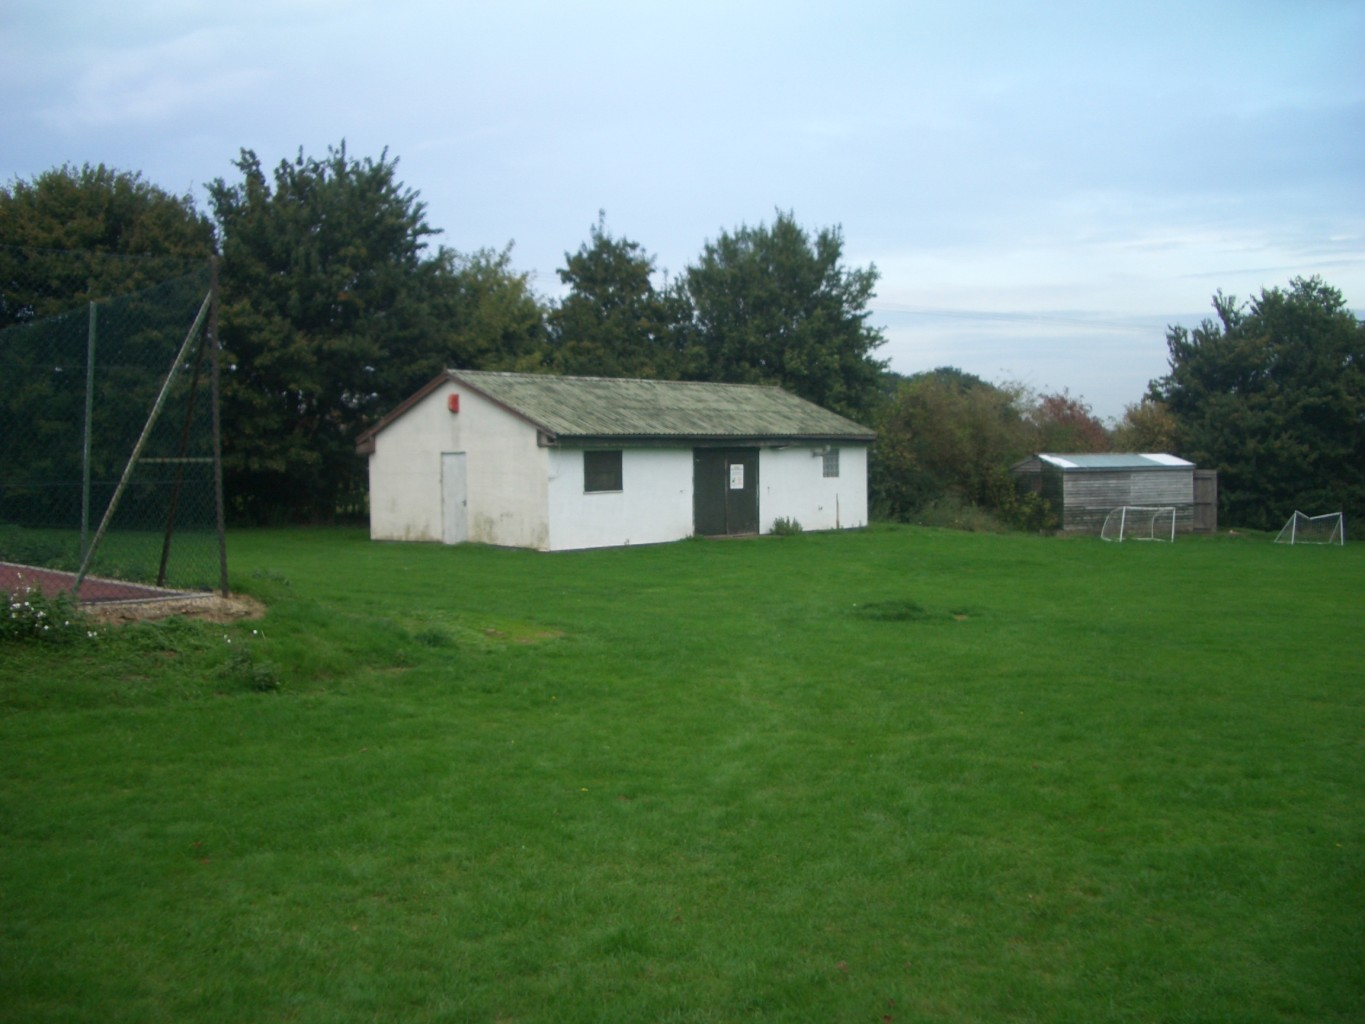 The old sports pavilion now replaced by the new Village Hall